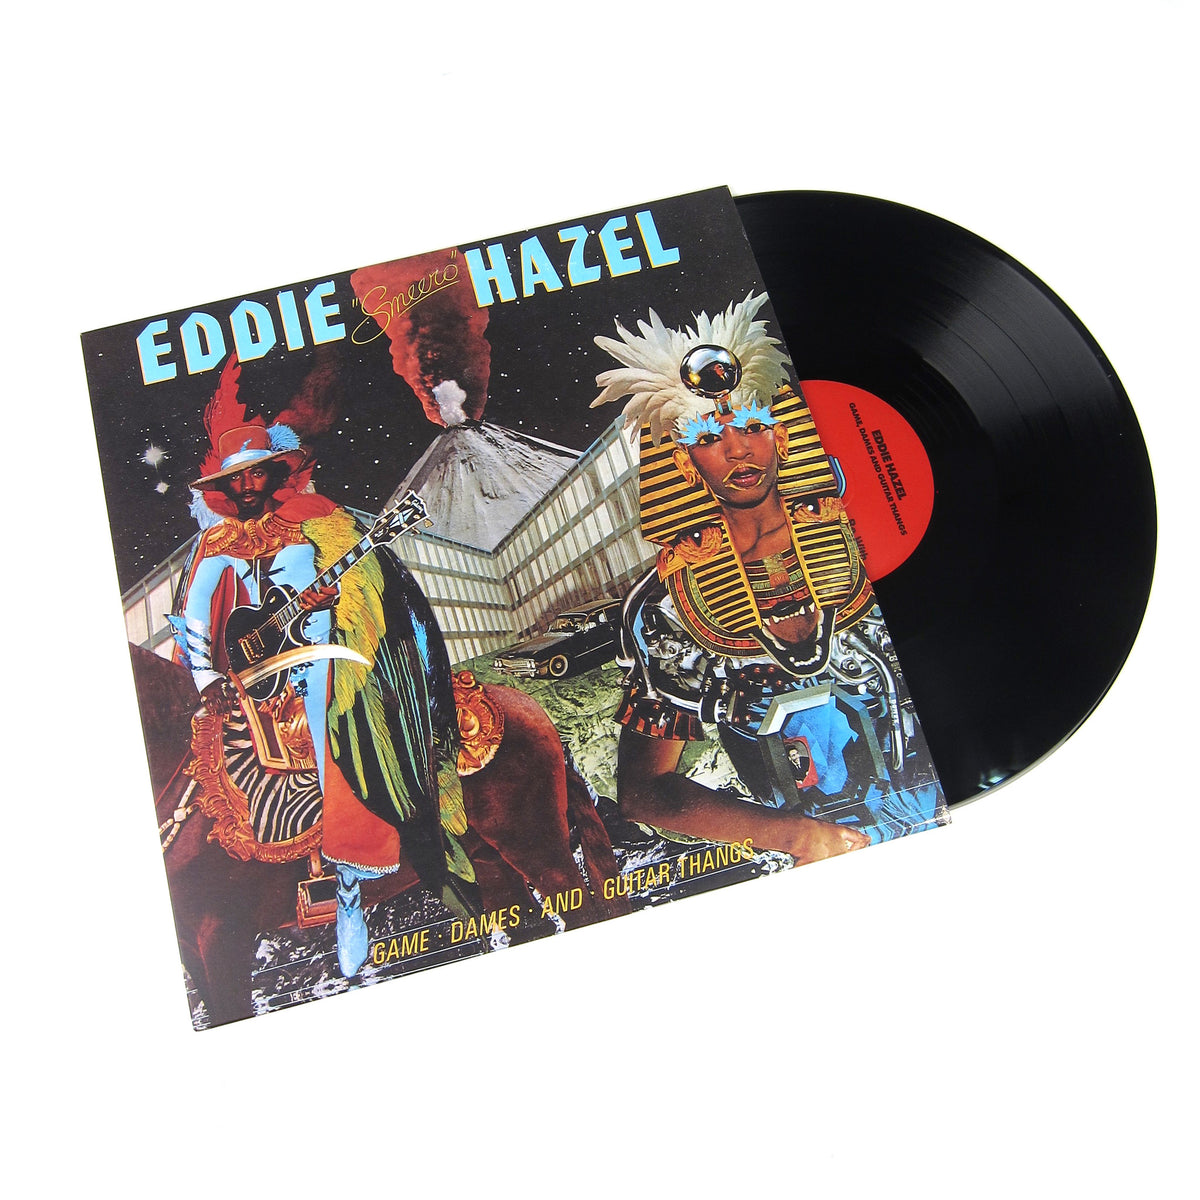 Eddie Hazel: Game, Dames & Guitar Thangs (180g) Vinyl LP